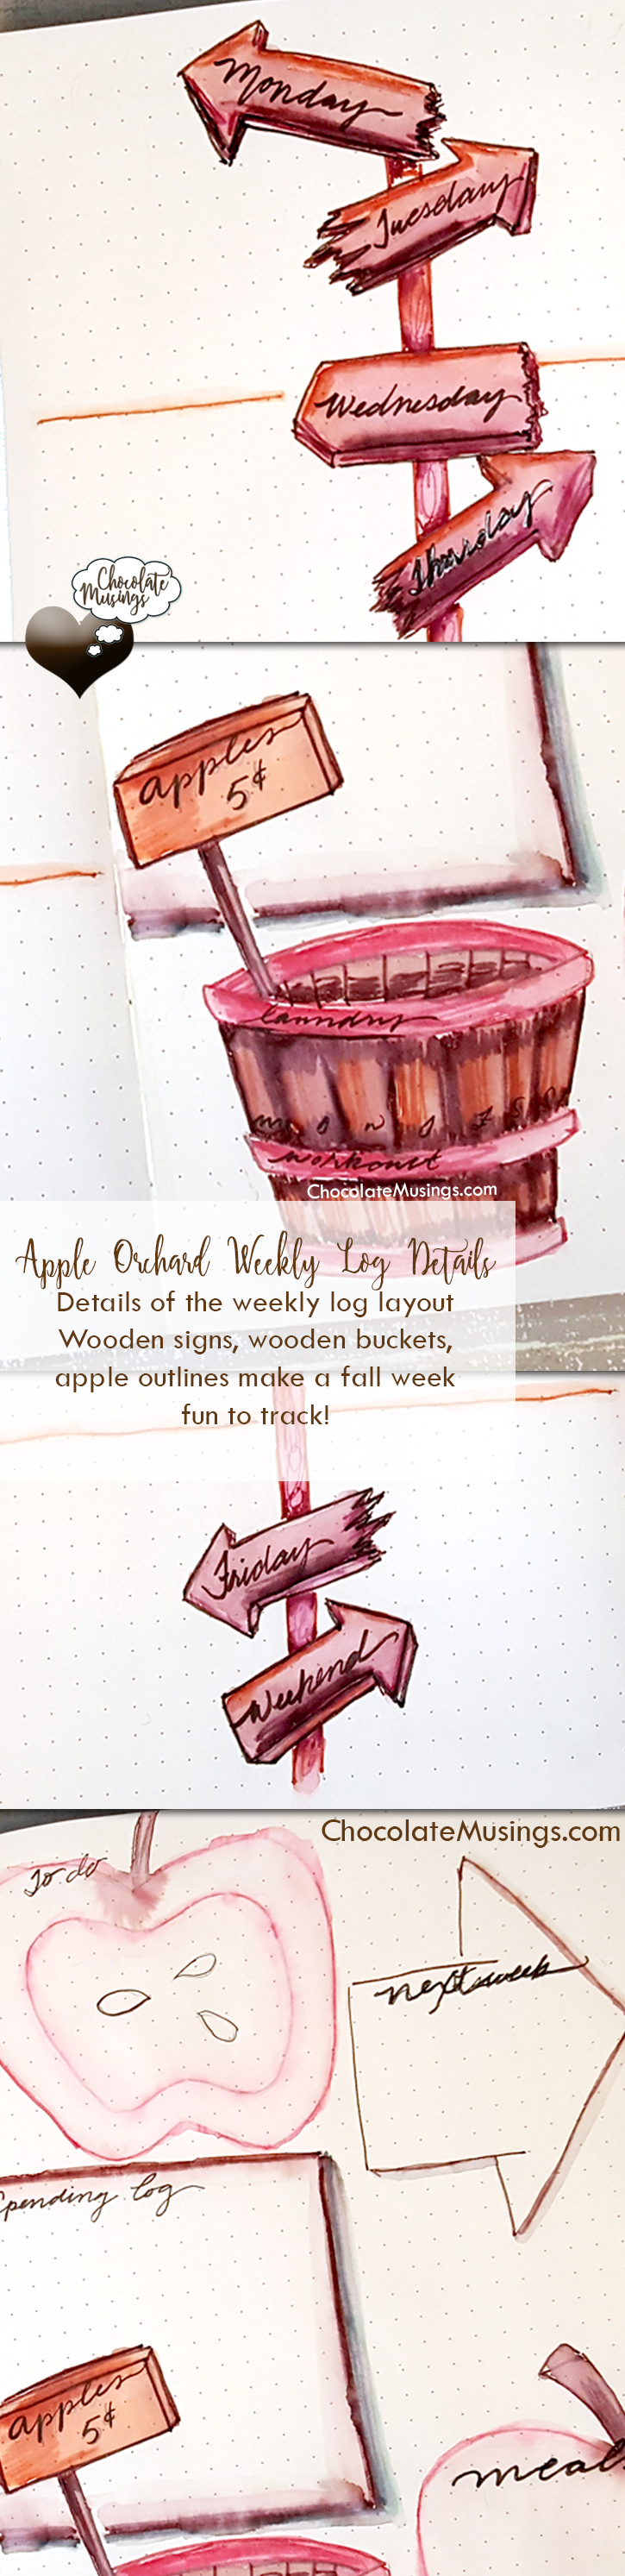 Apple Orchard/Wooden Directional Sign Weekly Spread